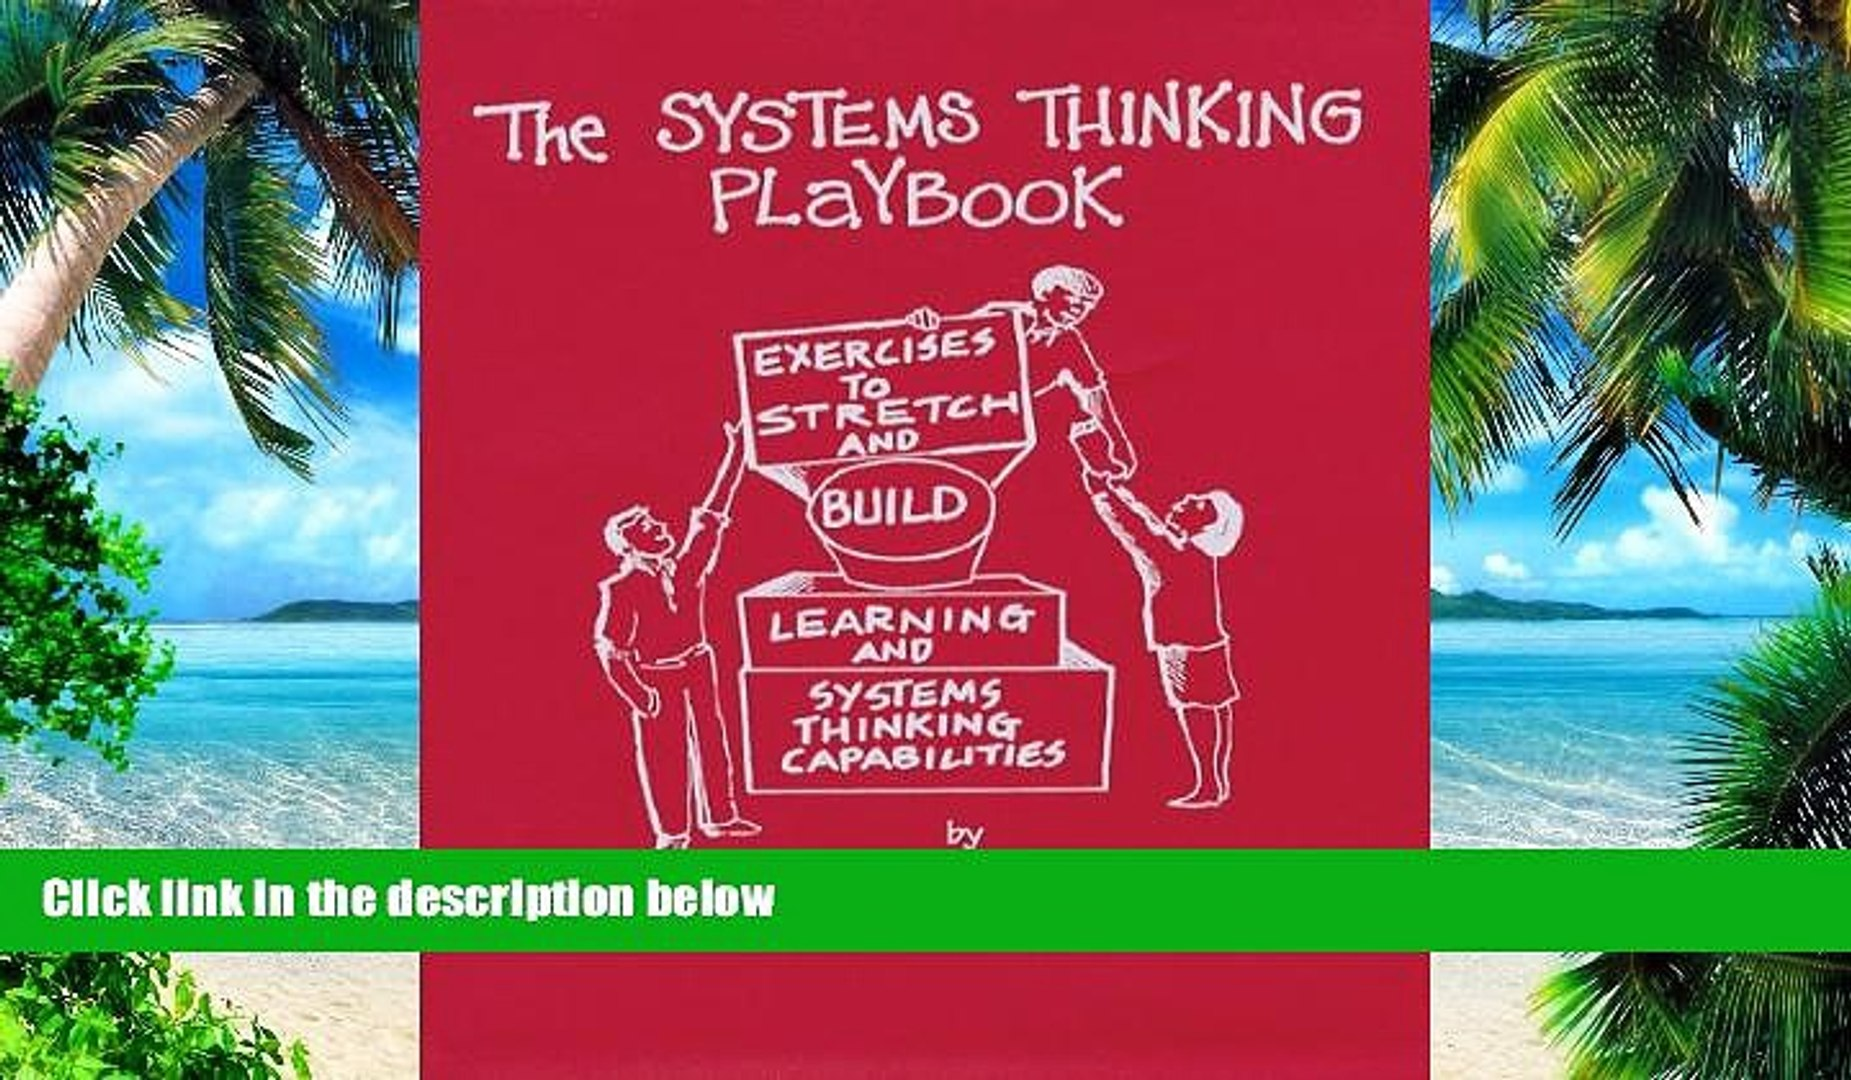 Exercises to Stretch and Build Learning and Systems Thinking Capabilities The Systems Thinking Playbook